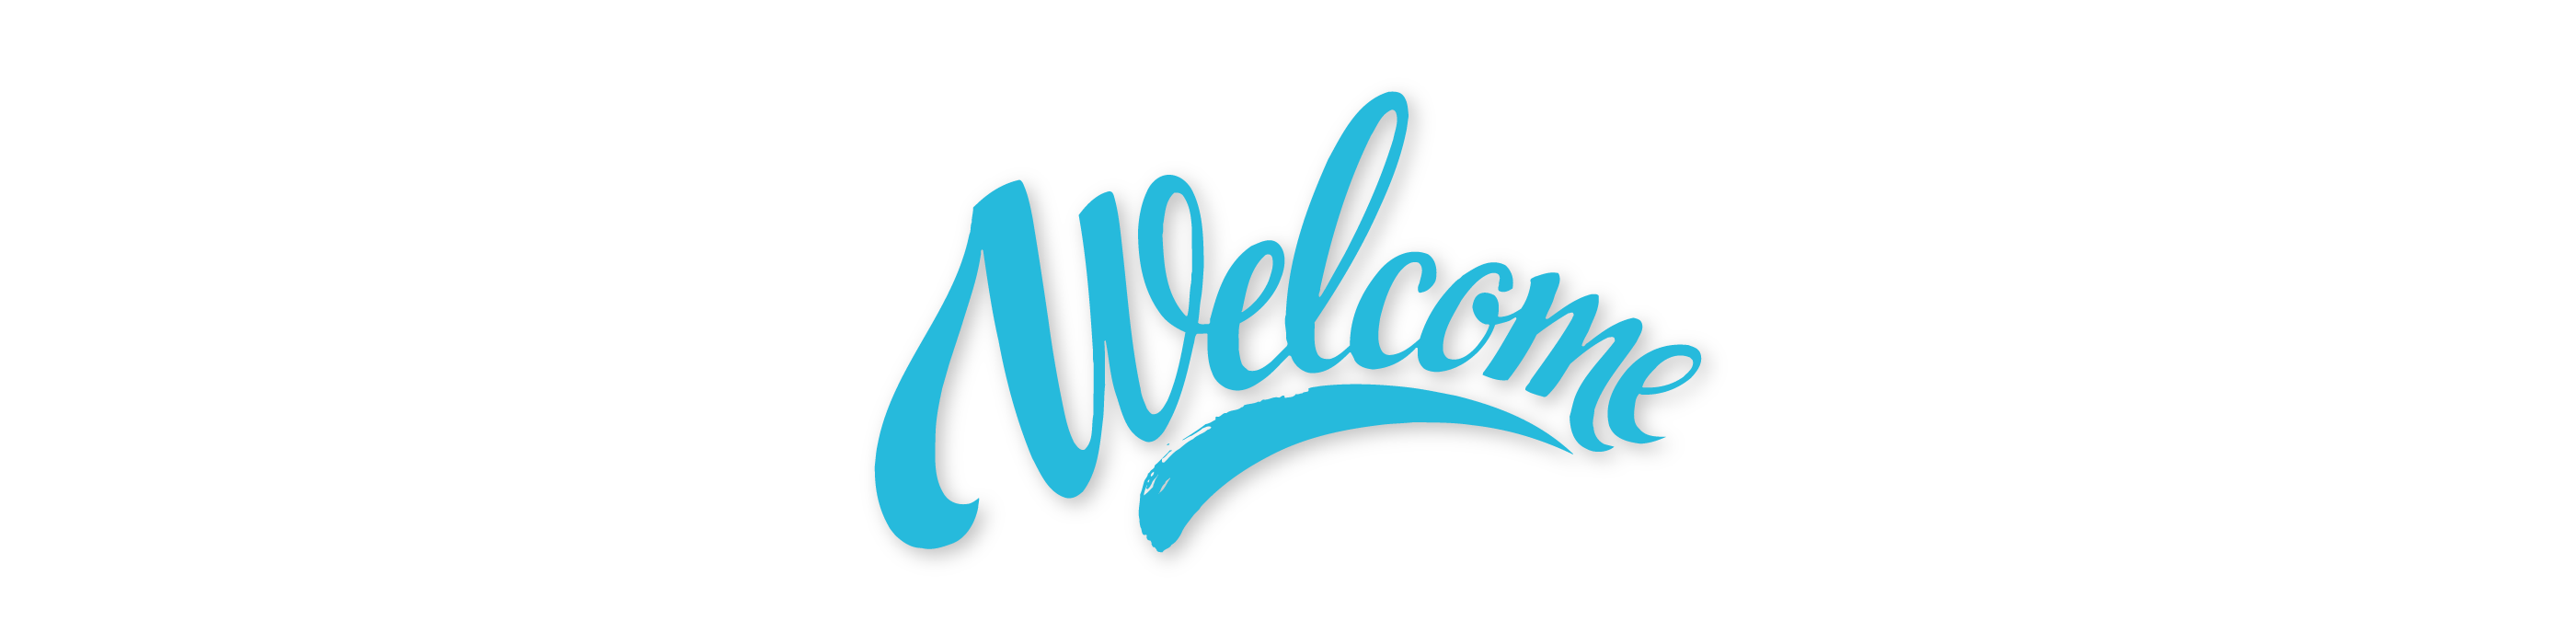 Summit_Welcome_slider_2800x700